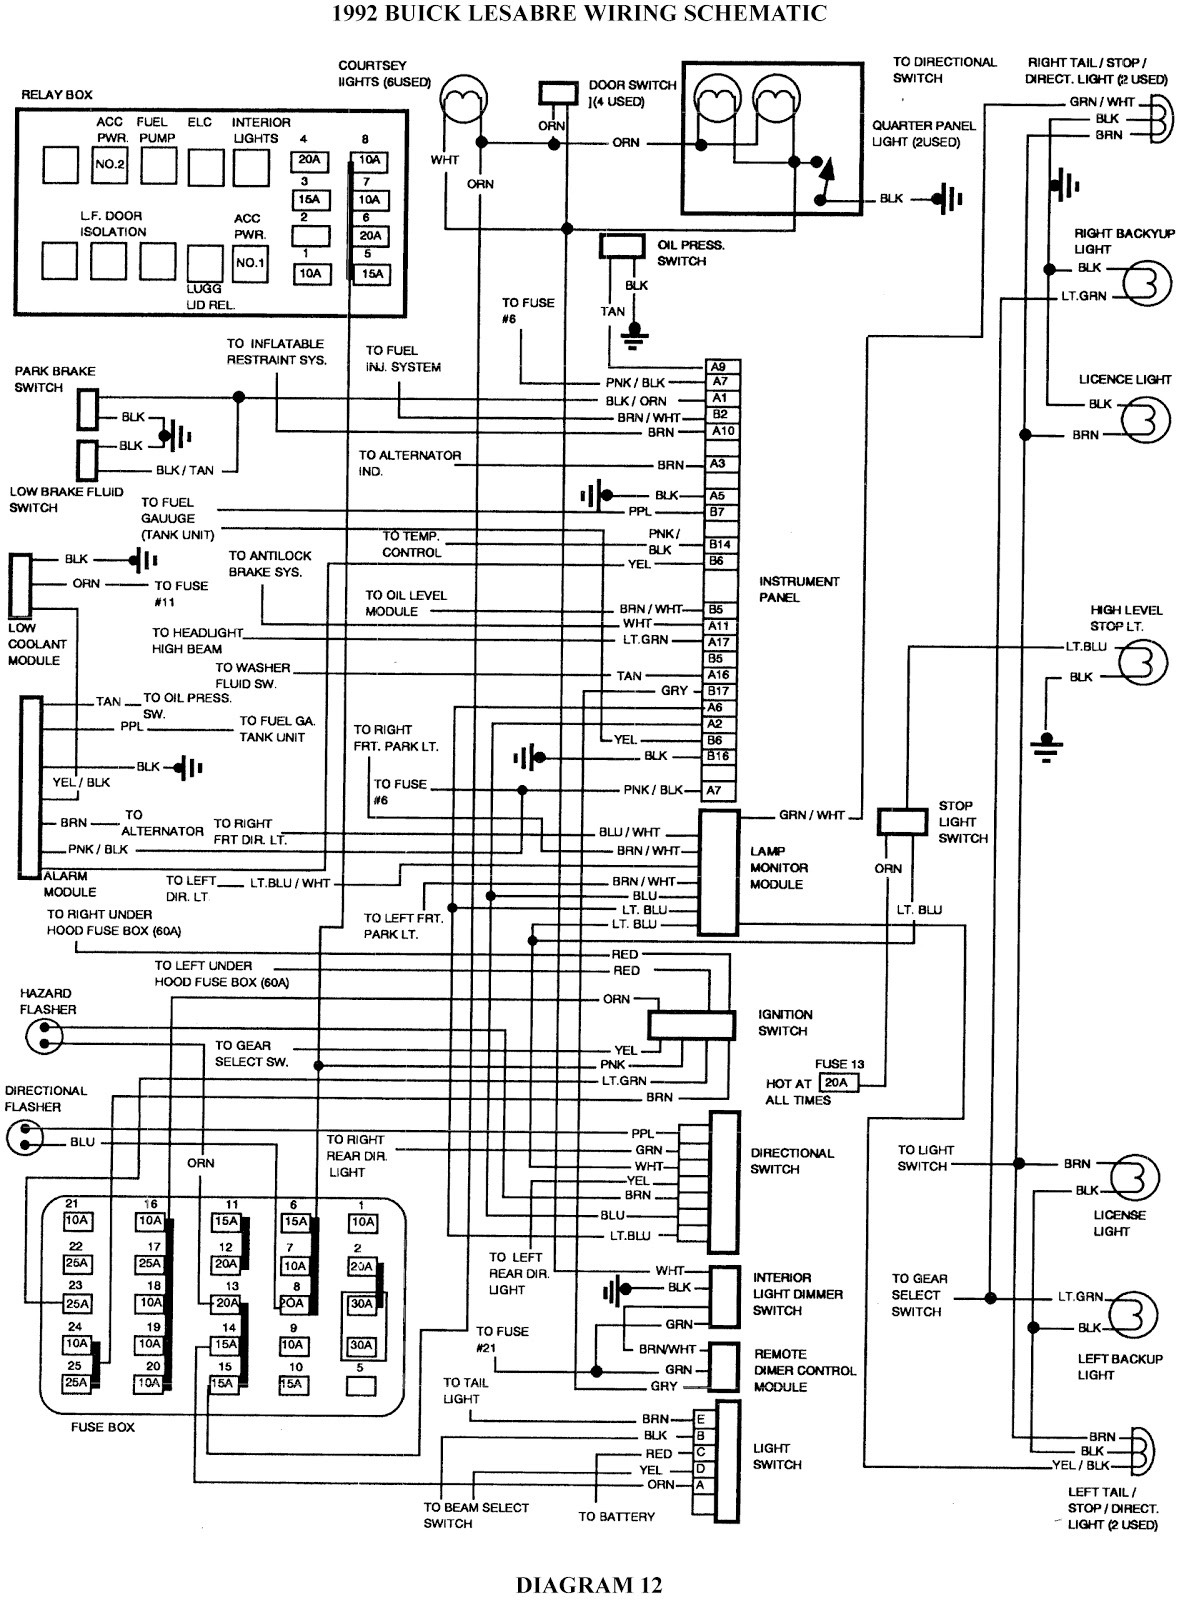 98 f150 alarm wiring diagram voyager 9030 brake controller 1992 buick lesabre schematic diagrams | solutions